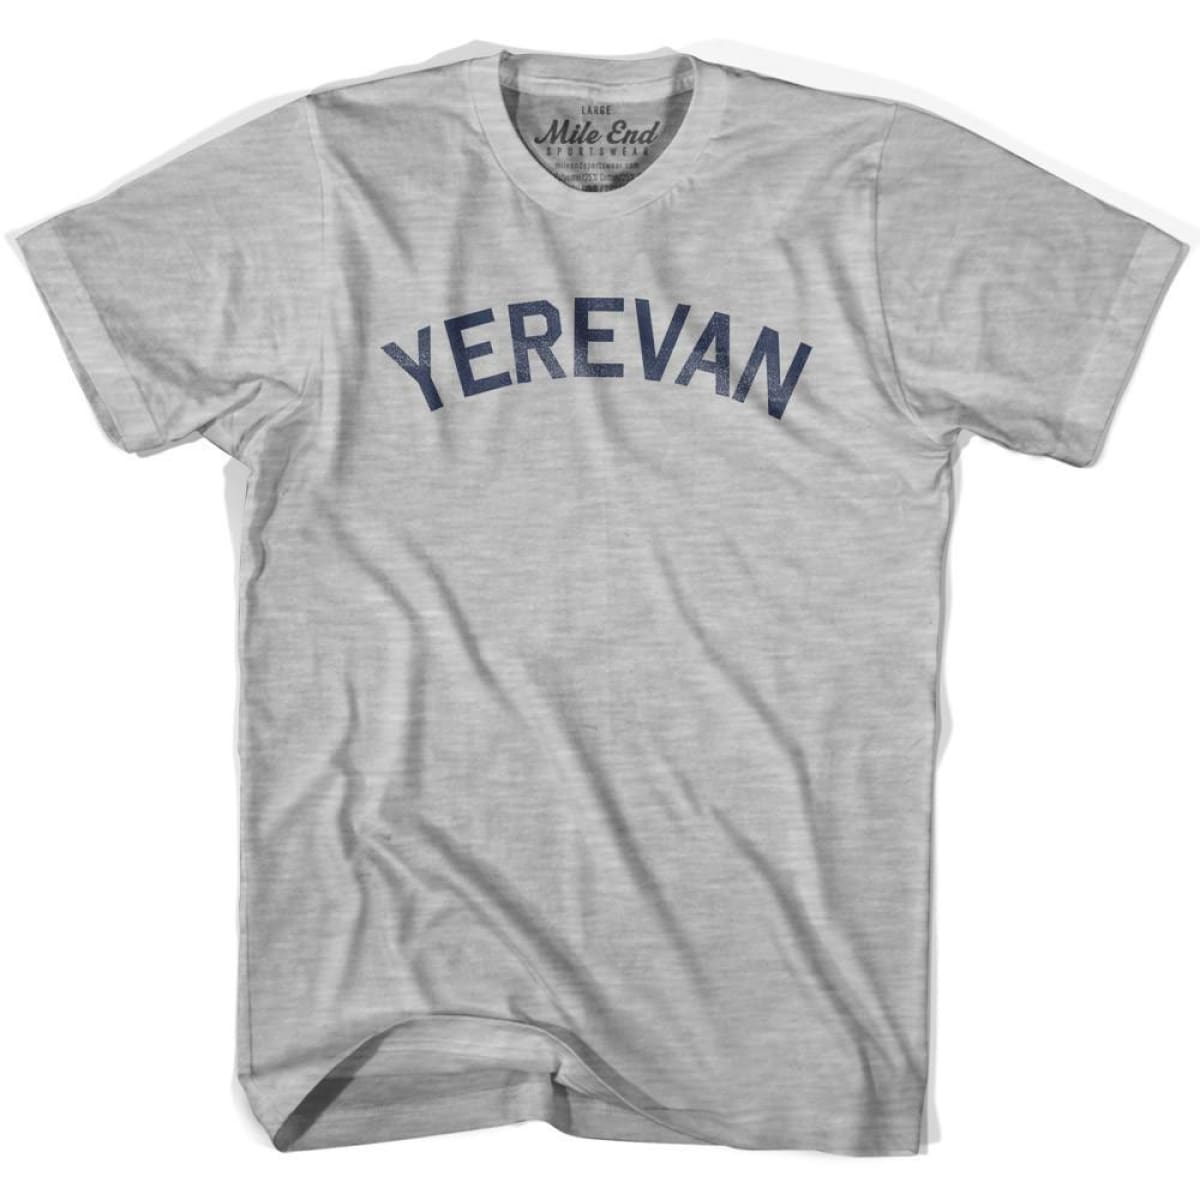 Yerevan City Vintage T-shirt - Grey Heather / Youth X-Small - Mile End City